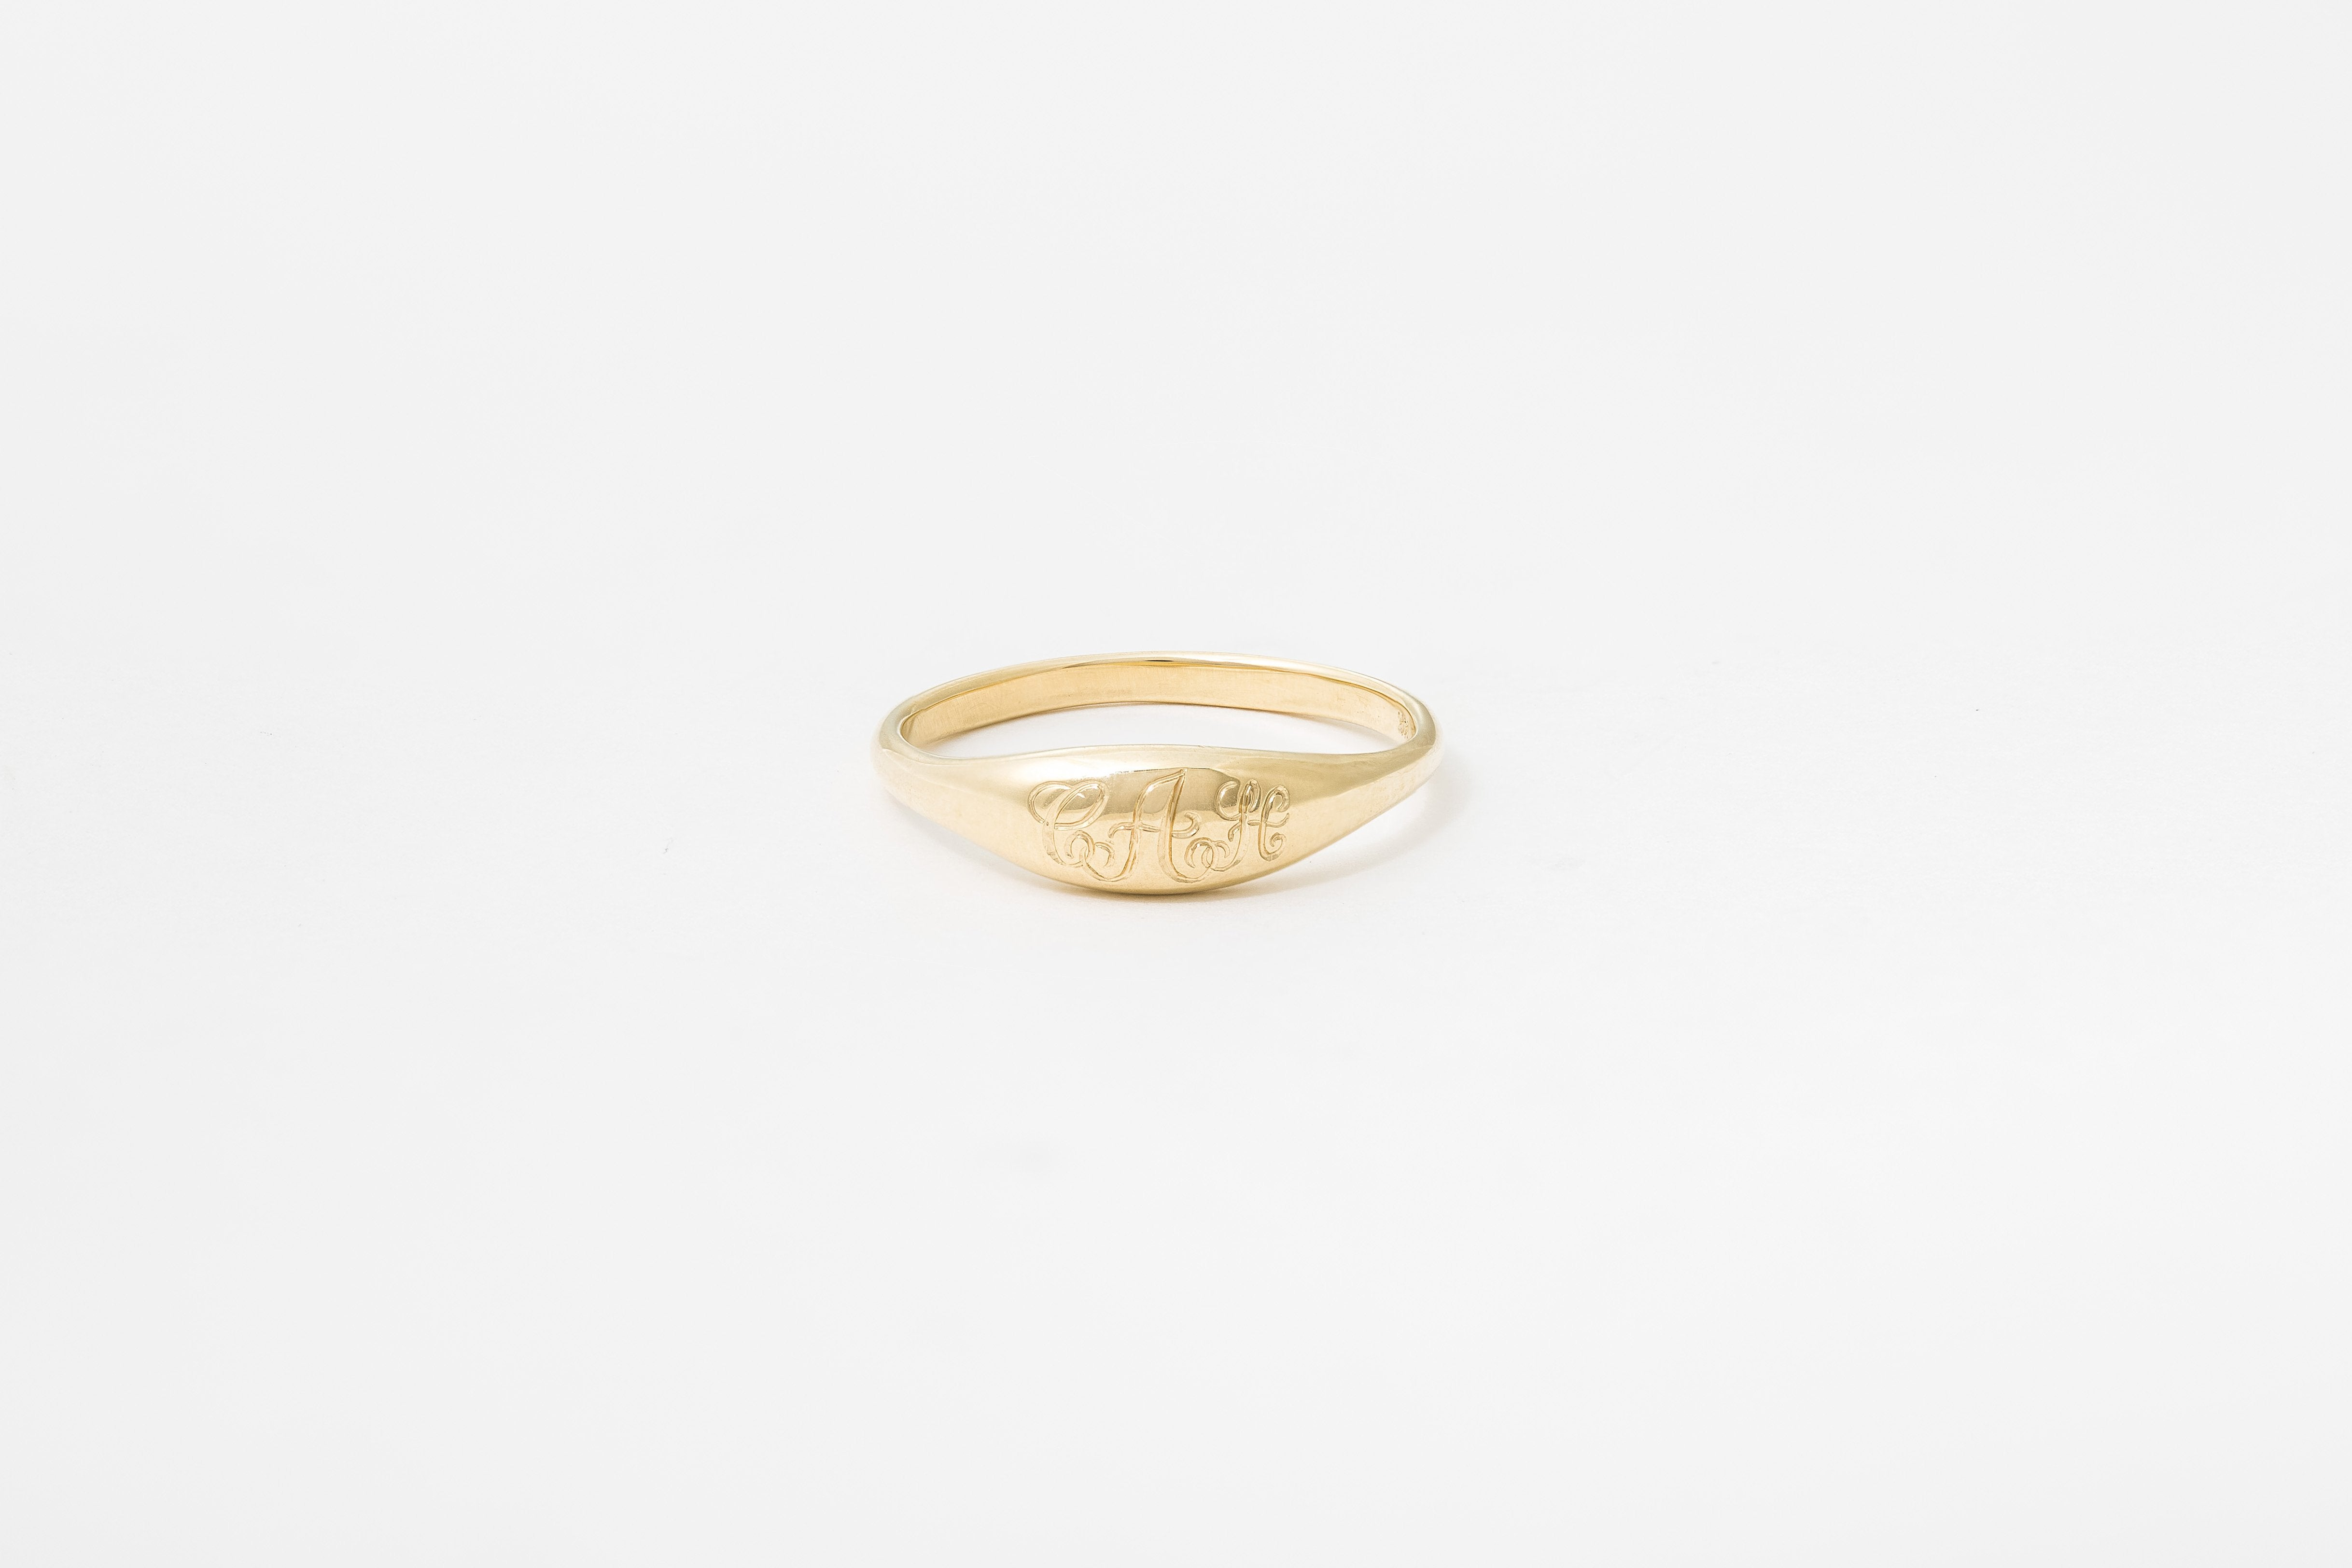 Engraved Ovate IV Signet Ring